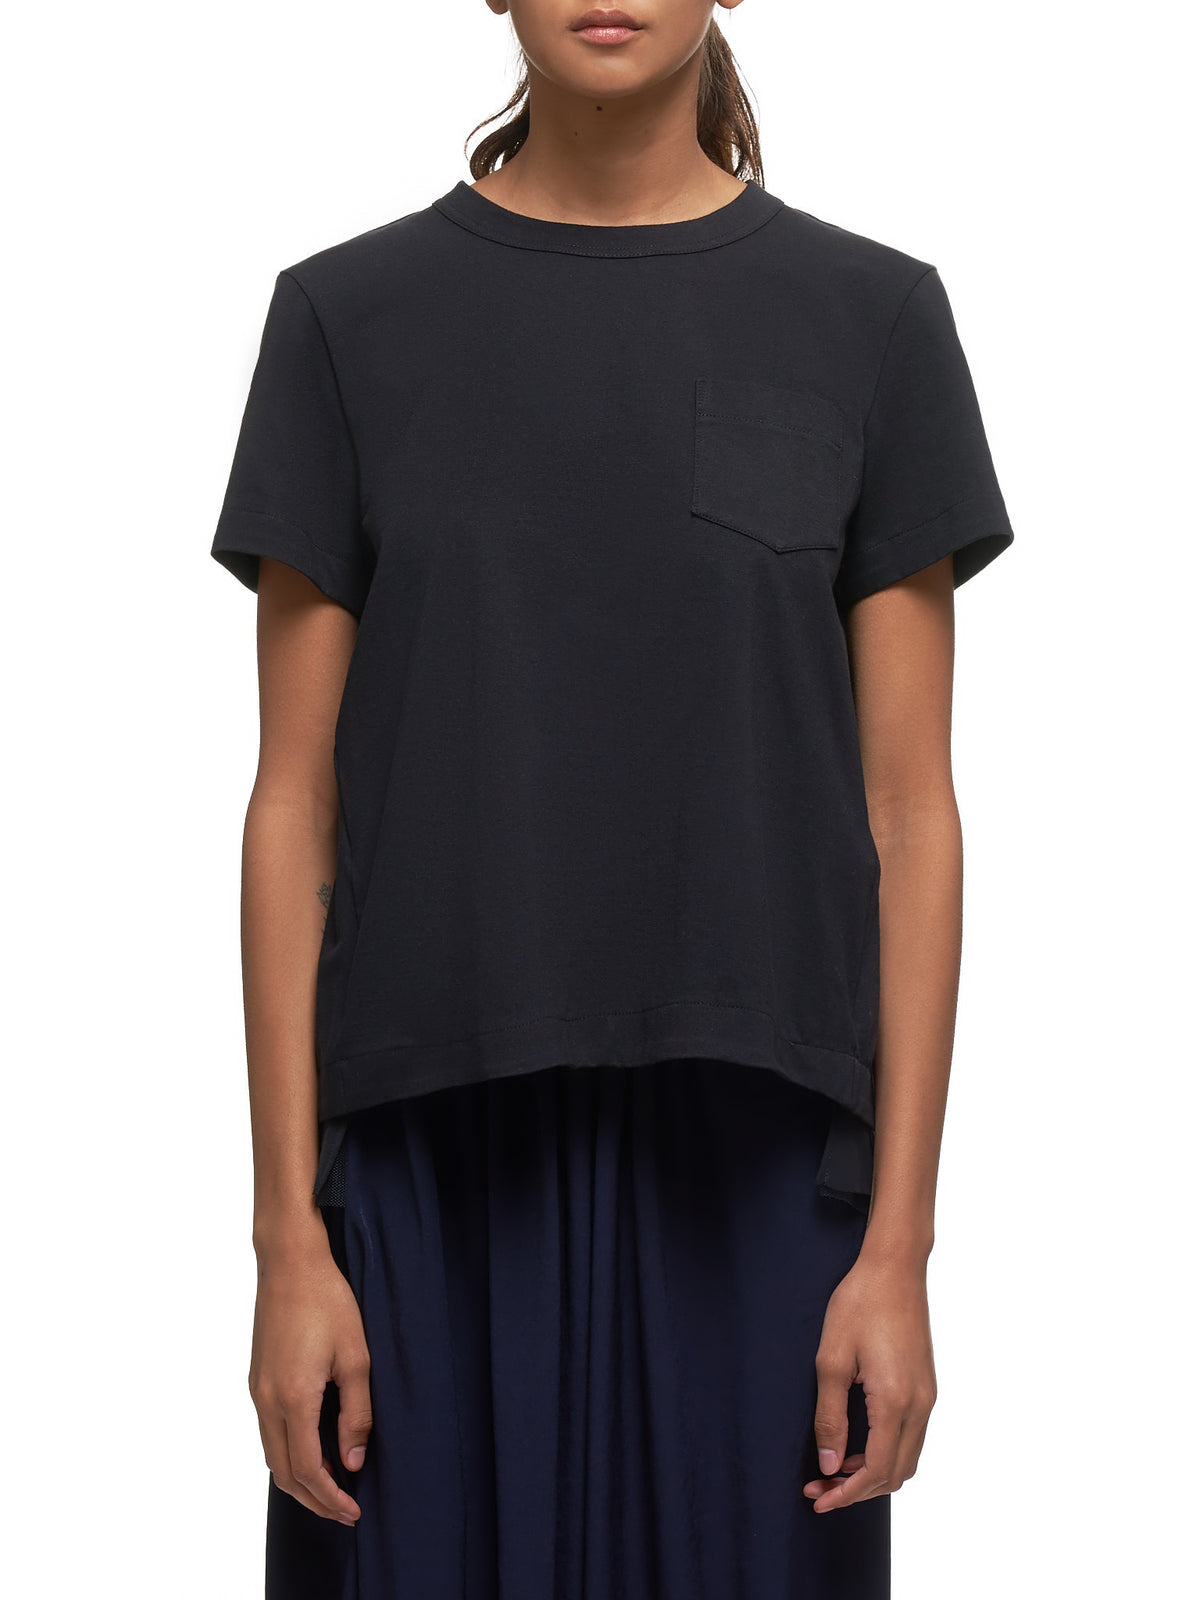 Cut-Out T-Shirt (04881-1-BLACK)